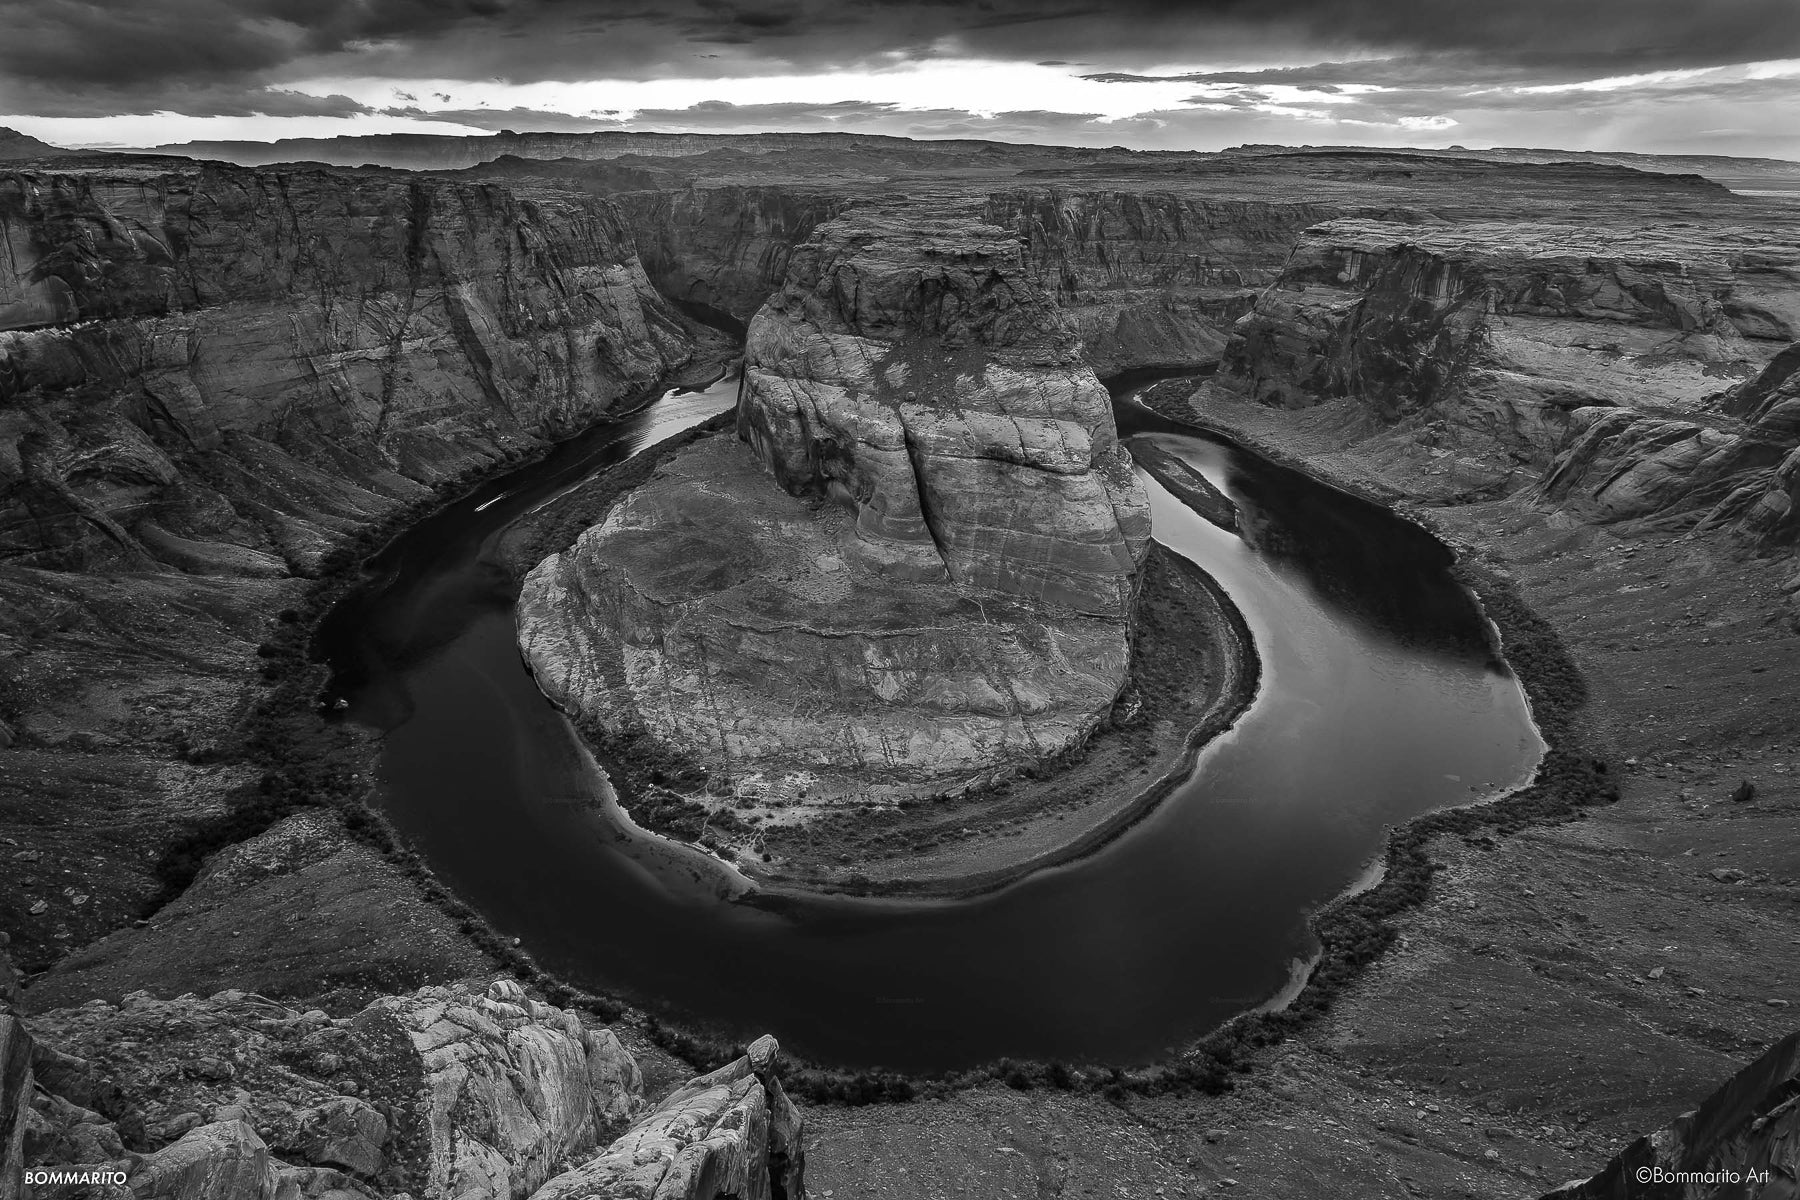 The Horseshoe Bend